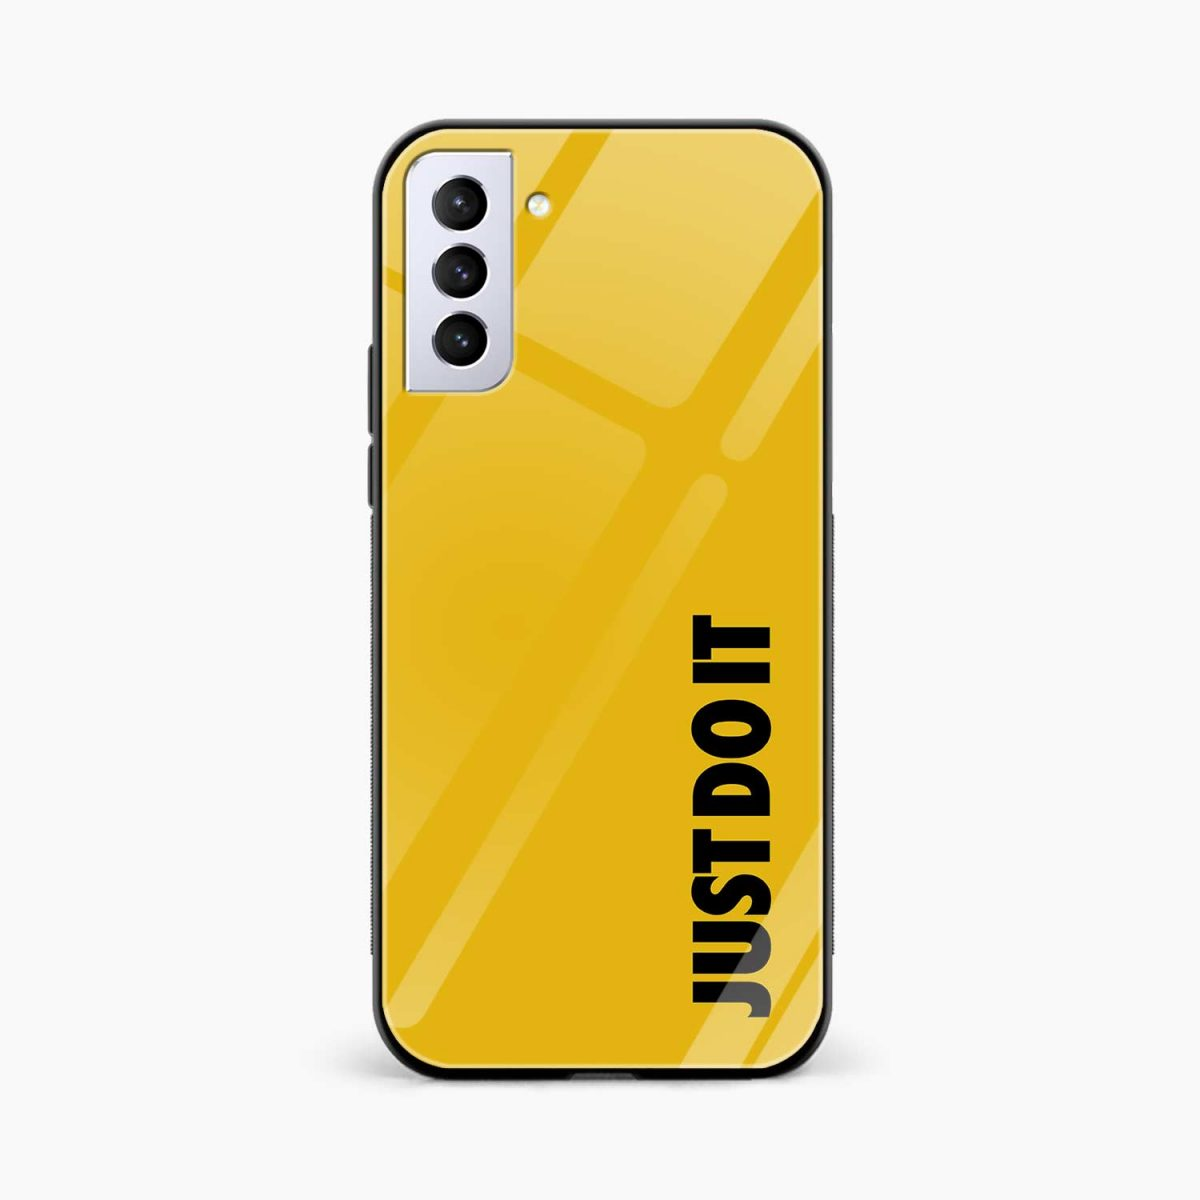 just do it front view samsung s21 plug back cover